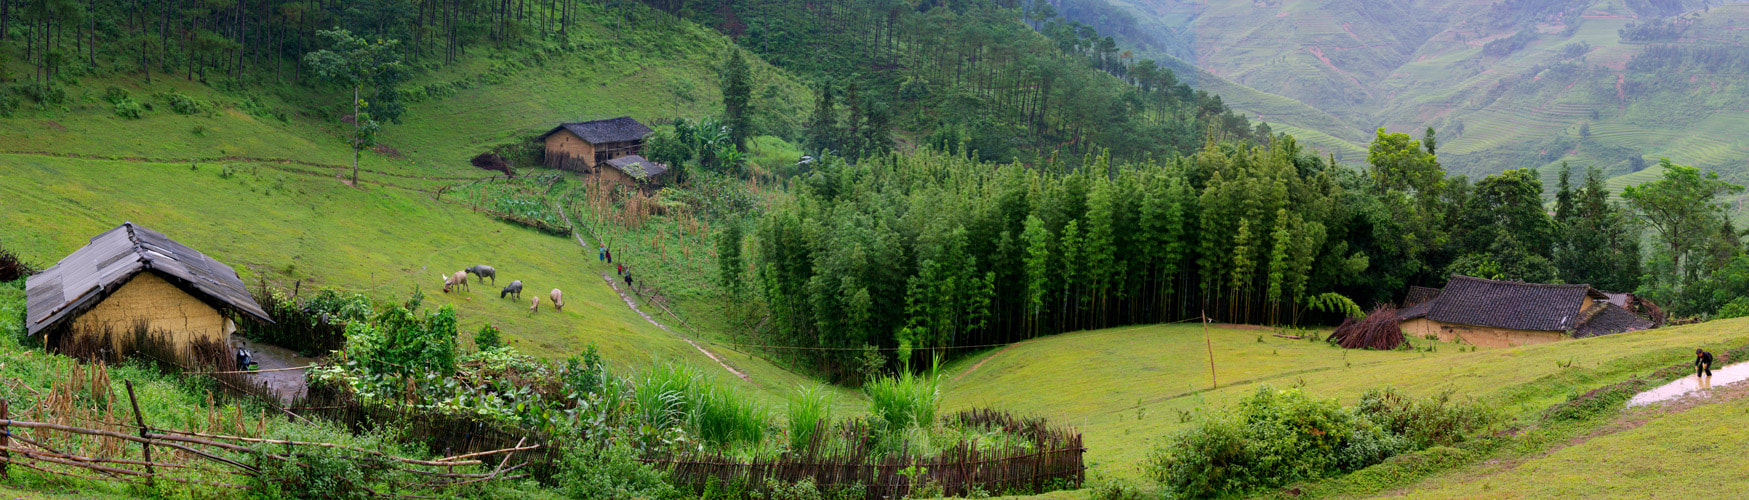 Photograph Ha Giang by Frank Dang on 500px